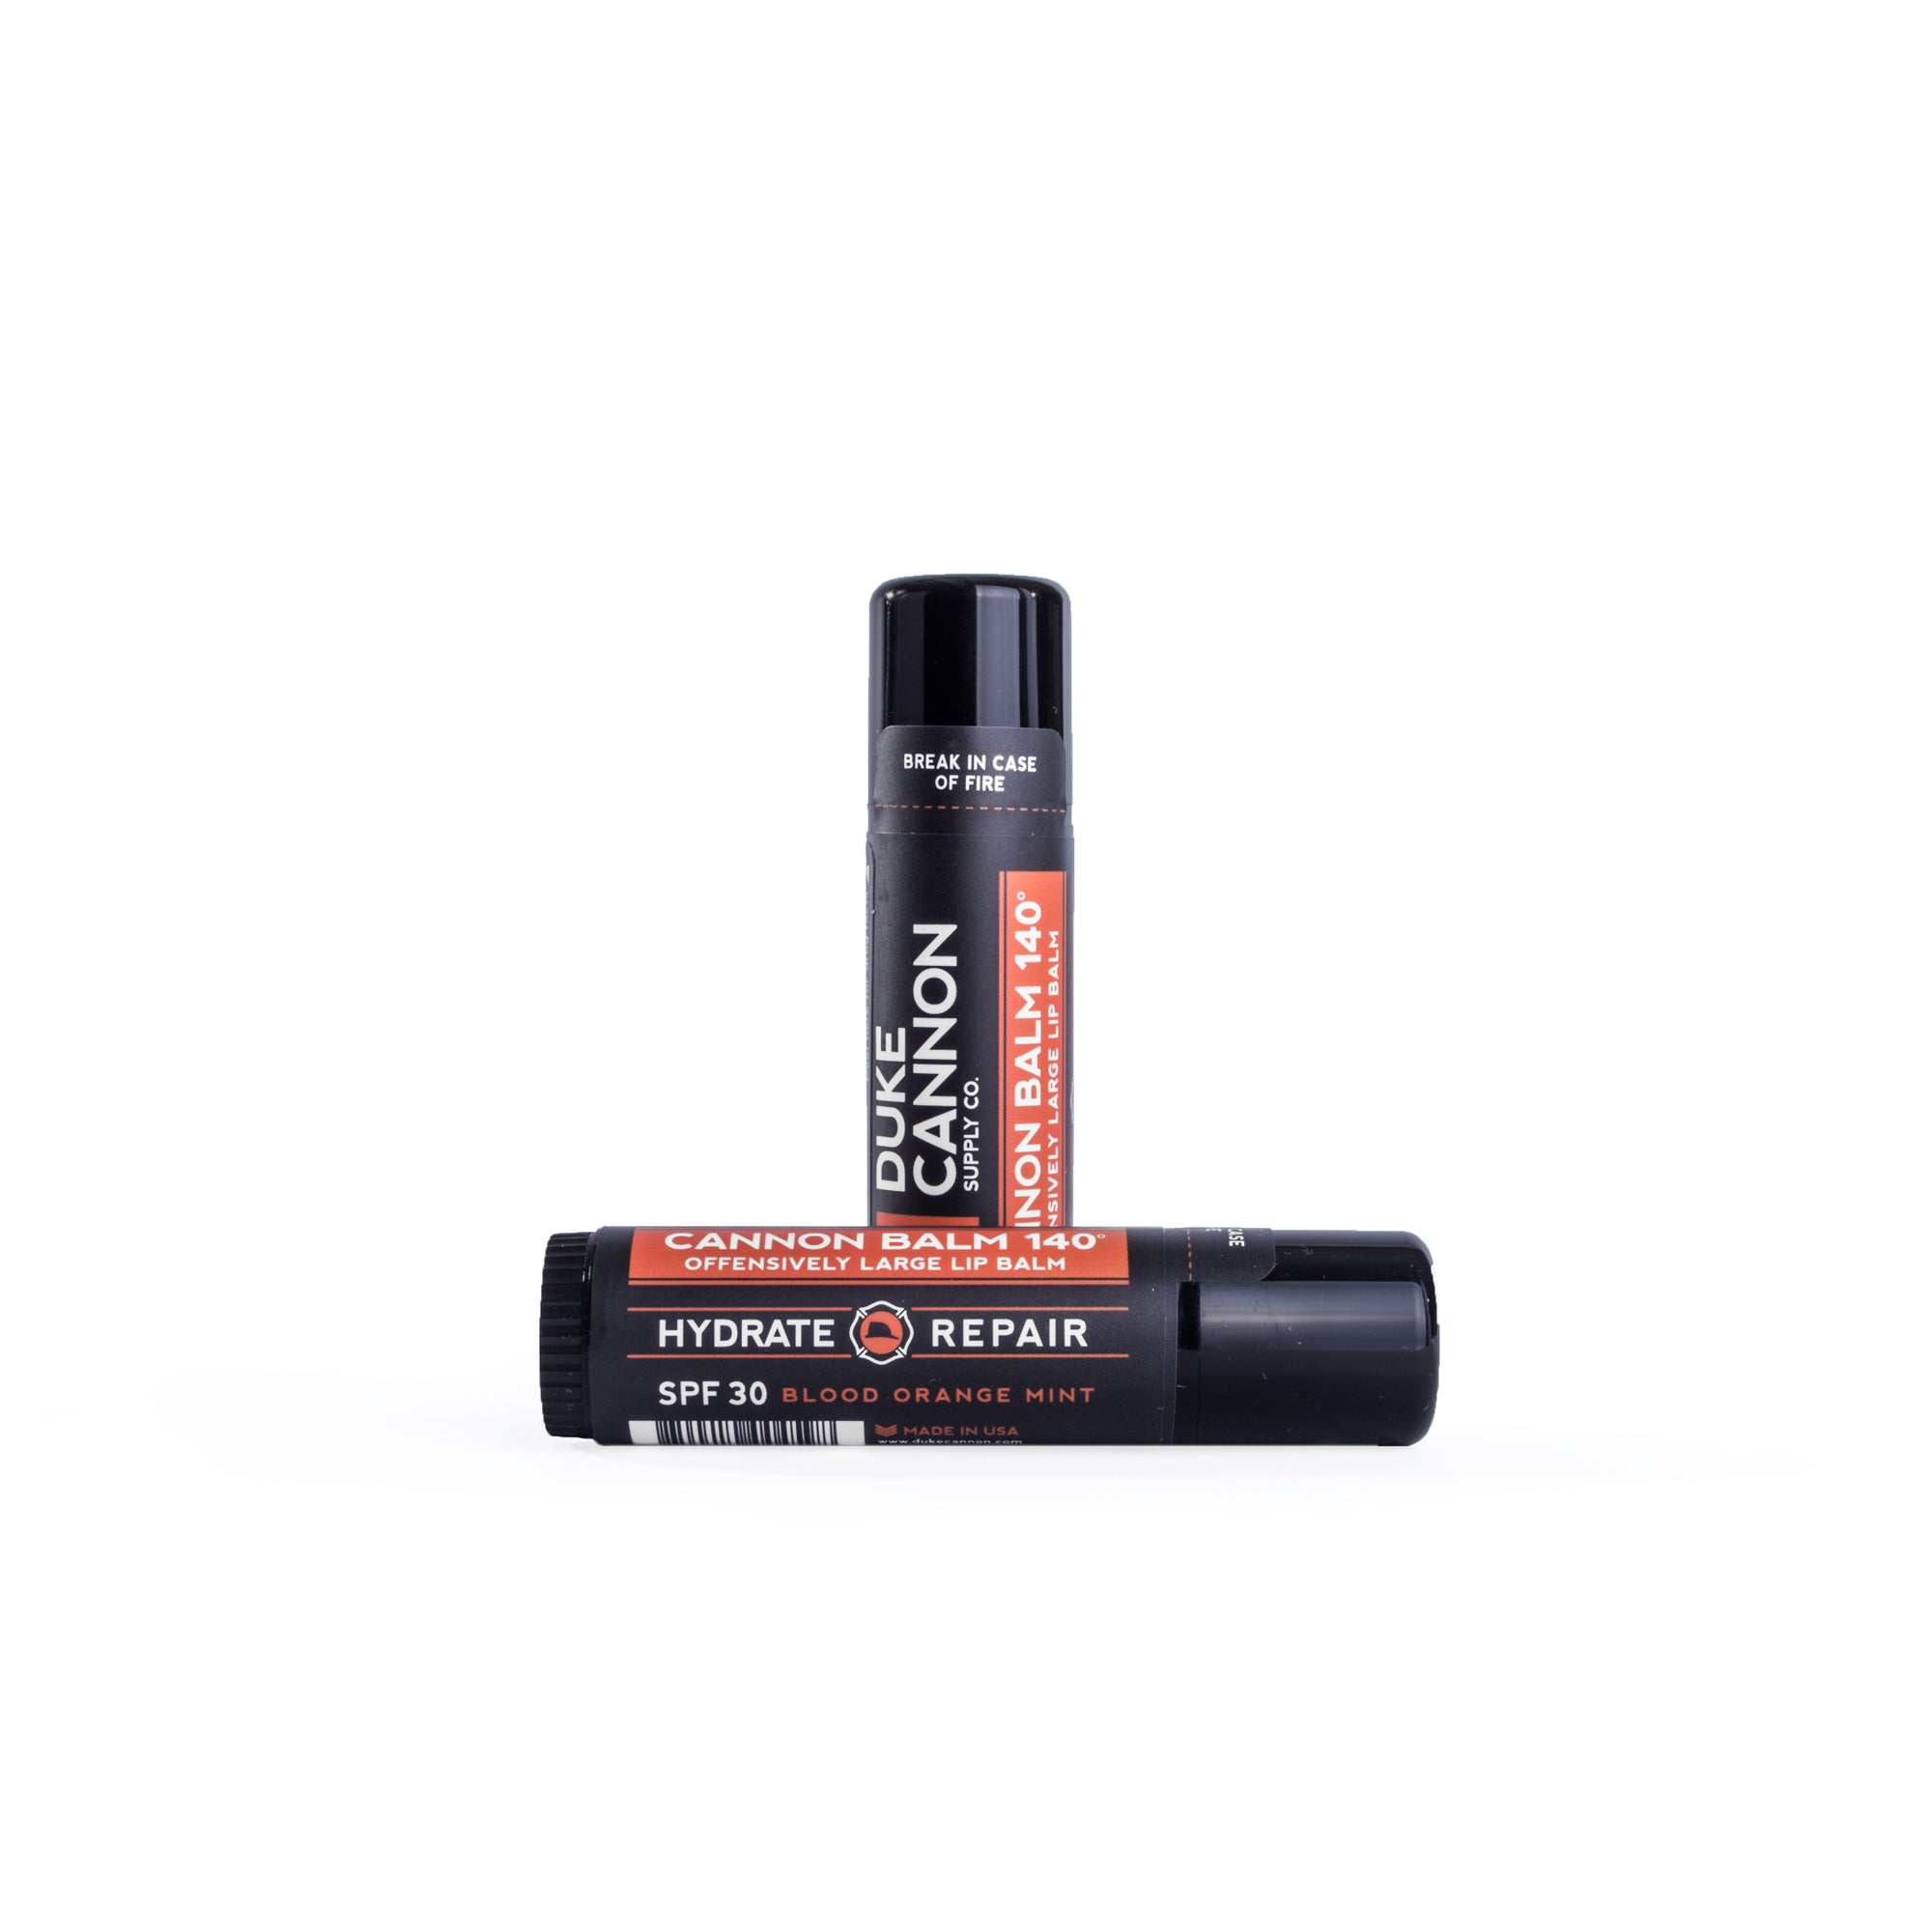 Cannon Balm 140° Tactical Lip Protectant - Duke Cannon